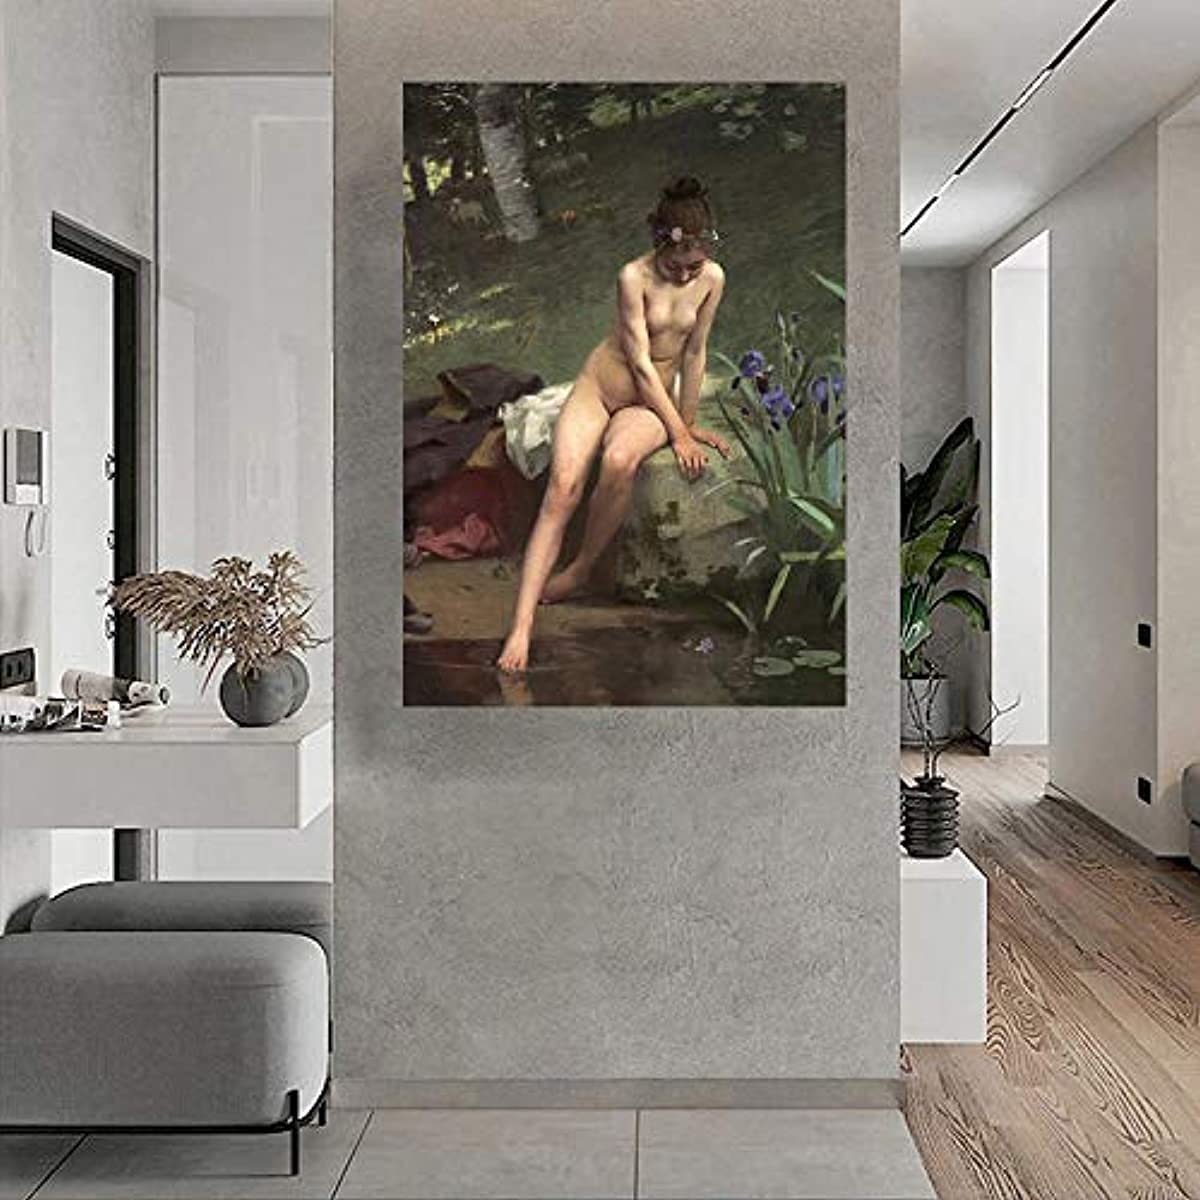 Max 43% OFF espesyal Classical Girl Nude Topics on TV Art Erotic Orien R18 Poster Picture